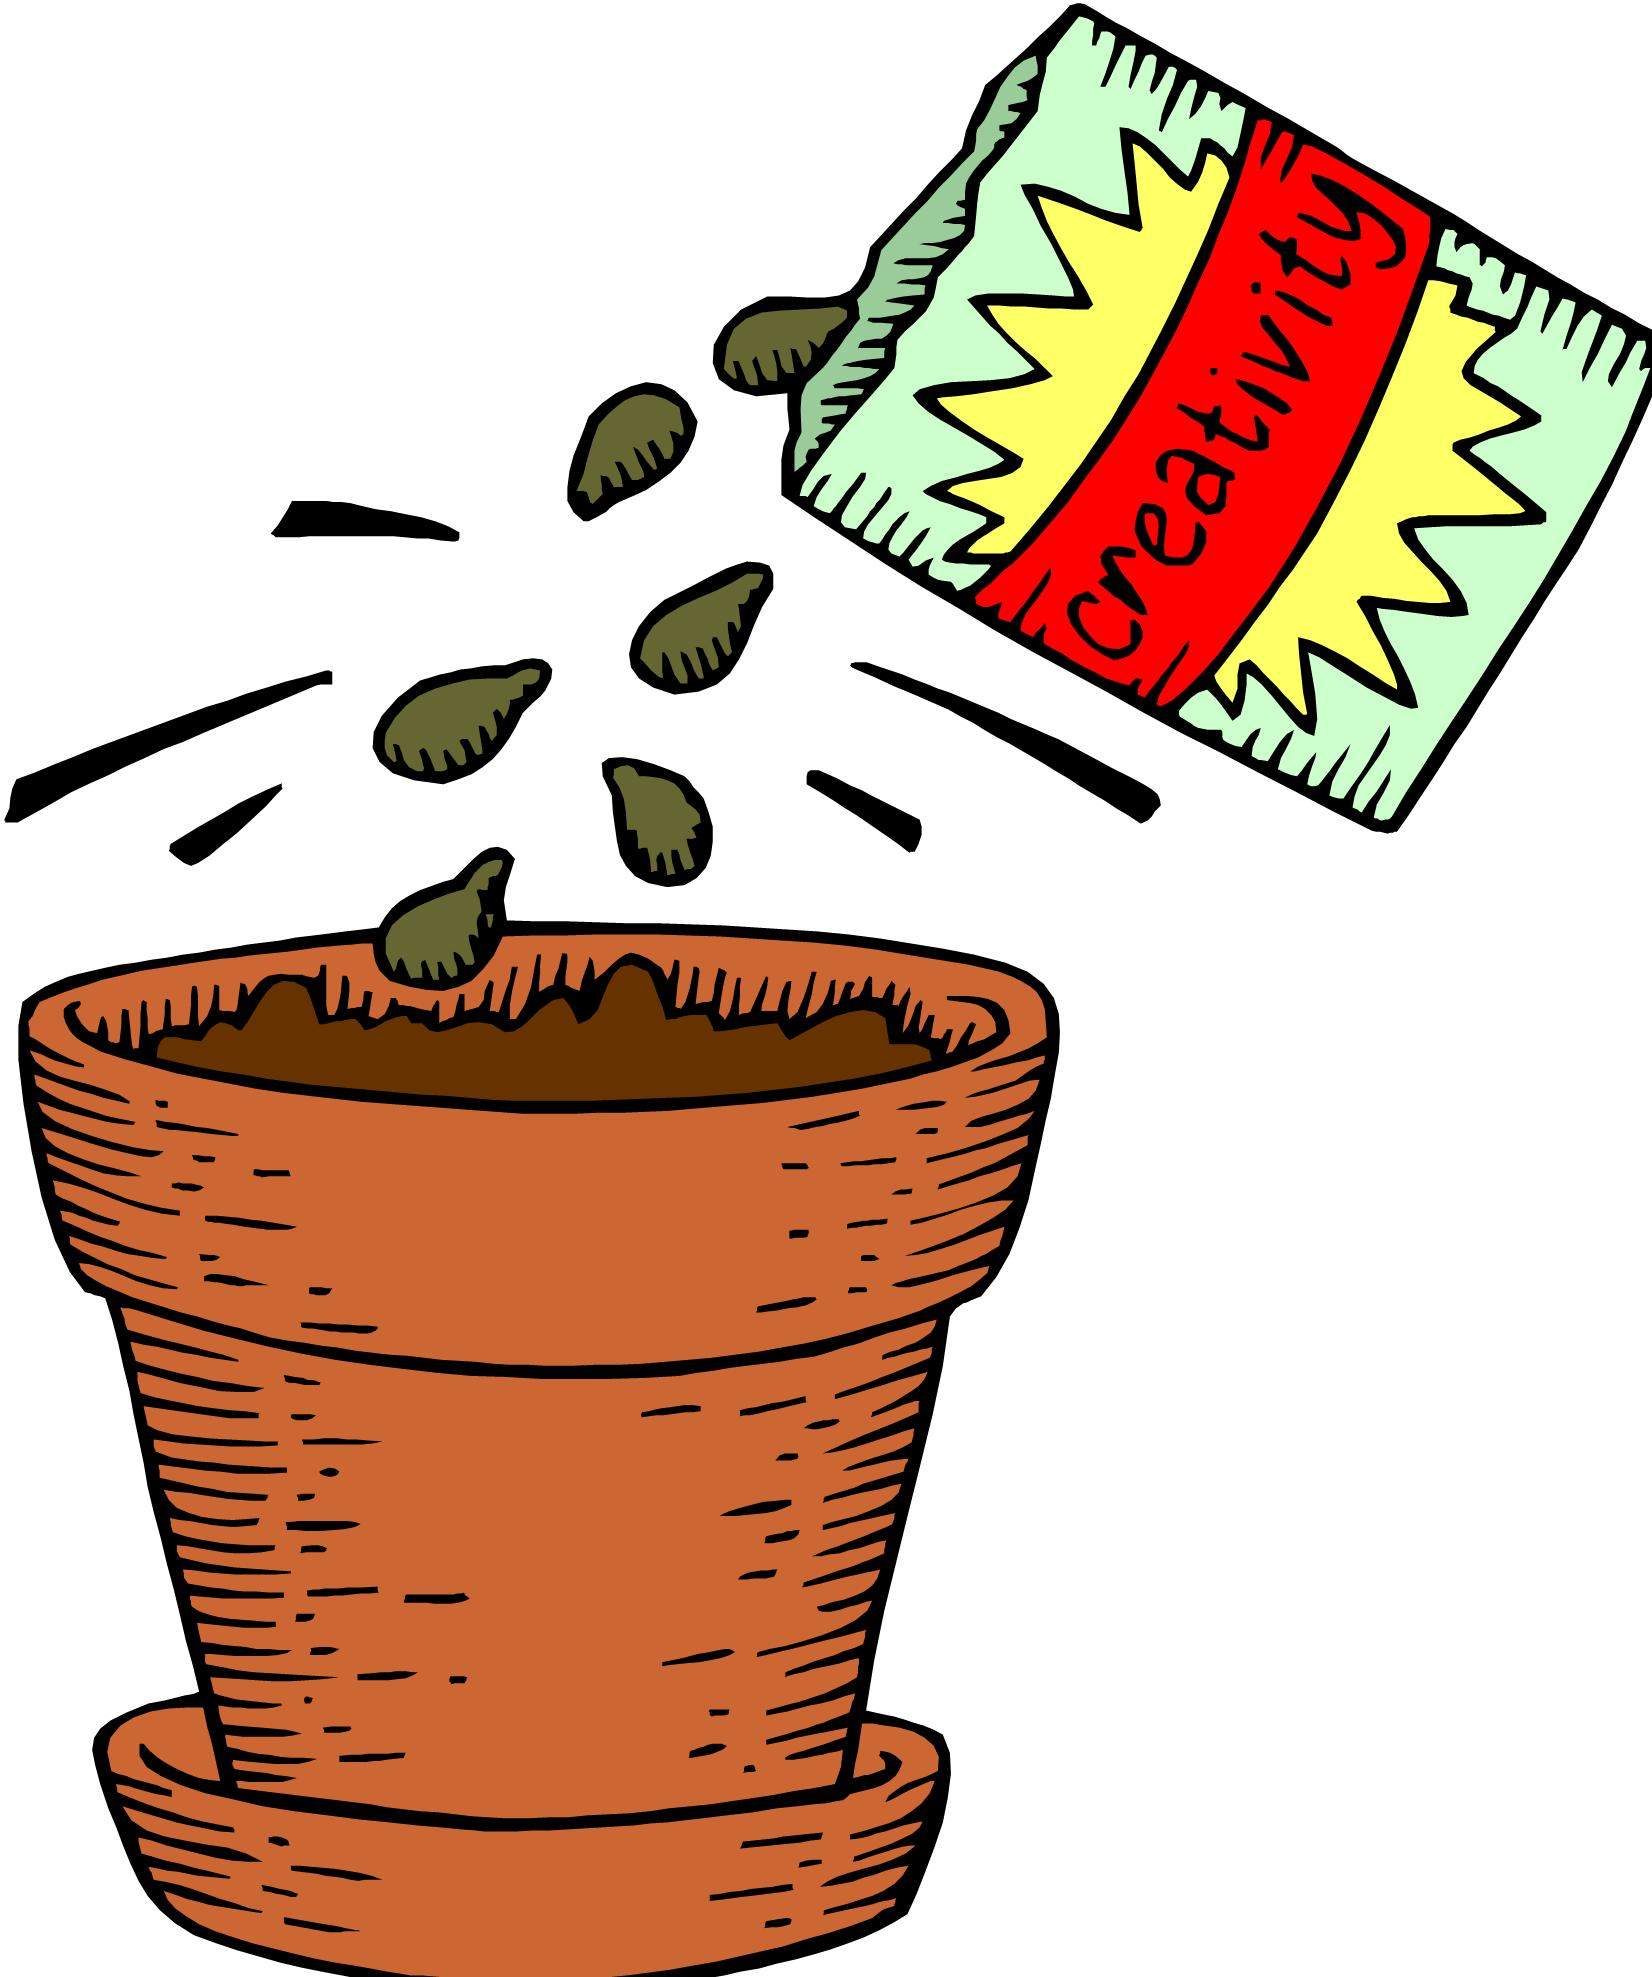 Free Seed Cliparts, Download Free Clip Art, Free Clip Art on.